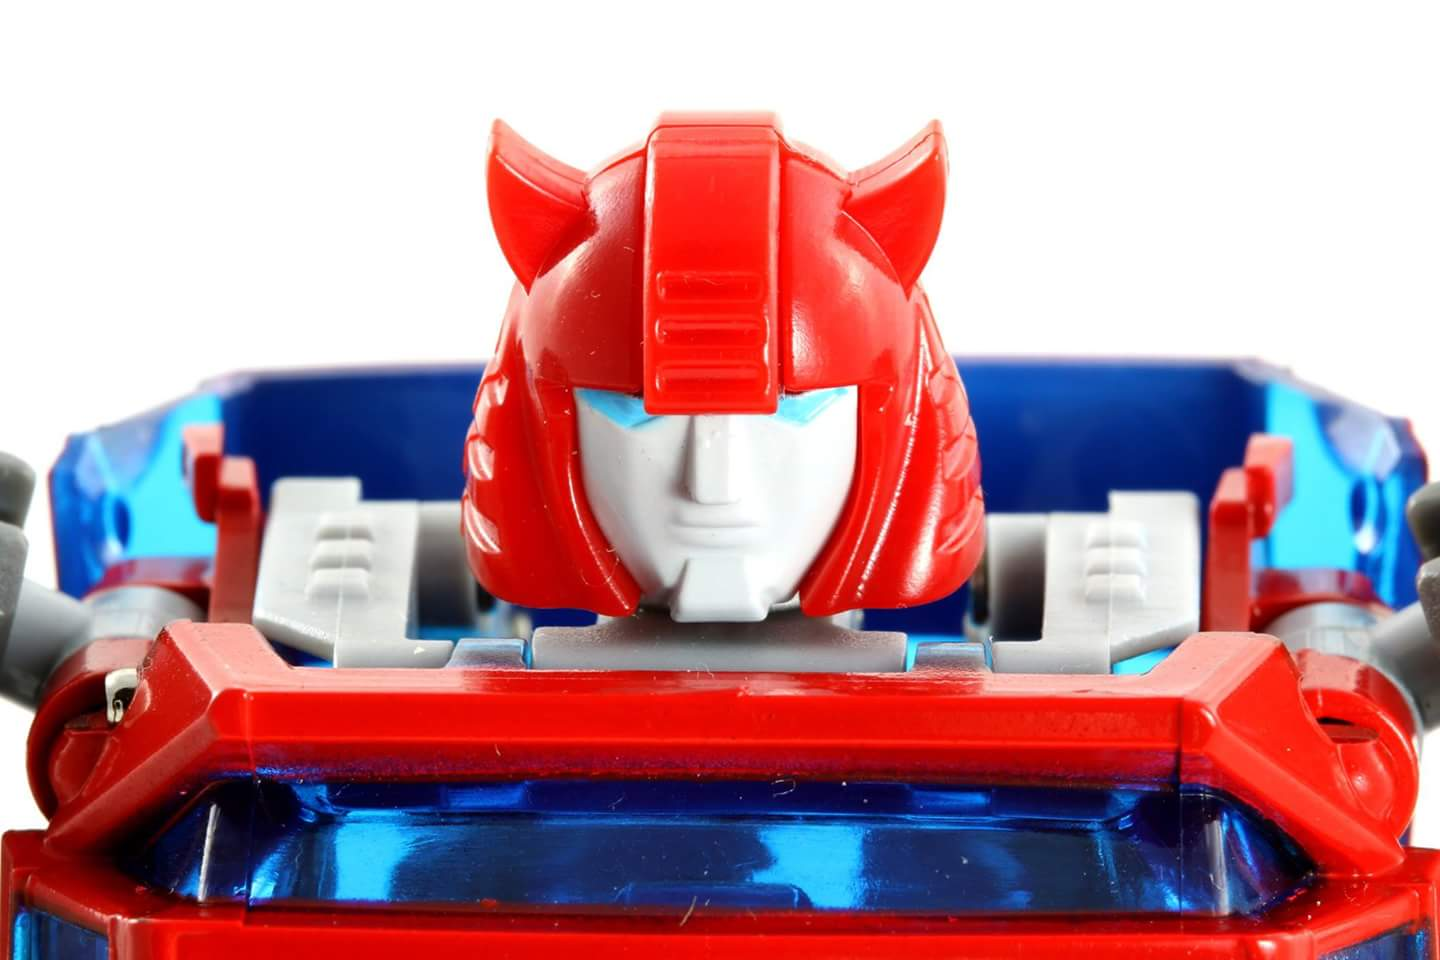 [ACE Collectables] Produit Tiers - Minibots MP - ACE-01 Tumbler (aka Cliffjumper/Matamore), ACE-02 Hiccups (aka Hubcap/Virevolto), ACE-03 Trident (aka Seaspray/Embruns) 97pHKvub